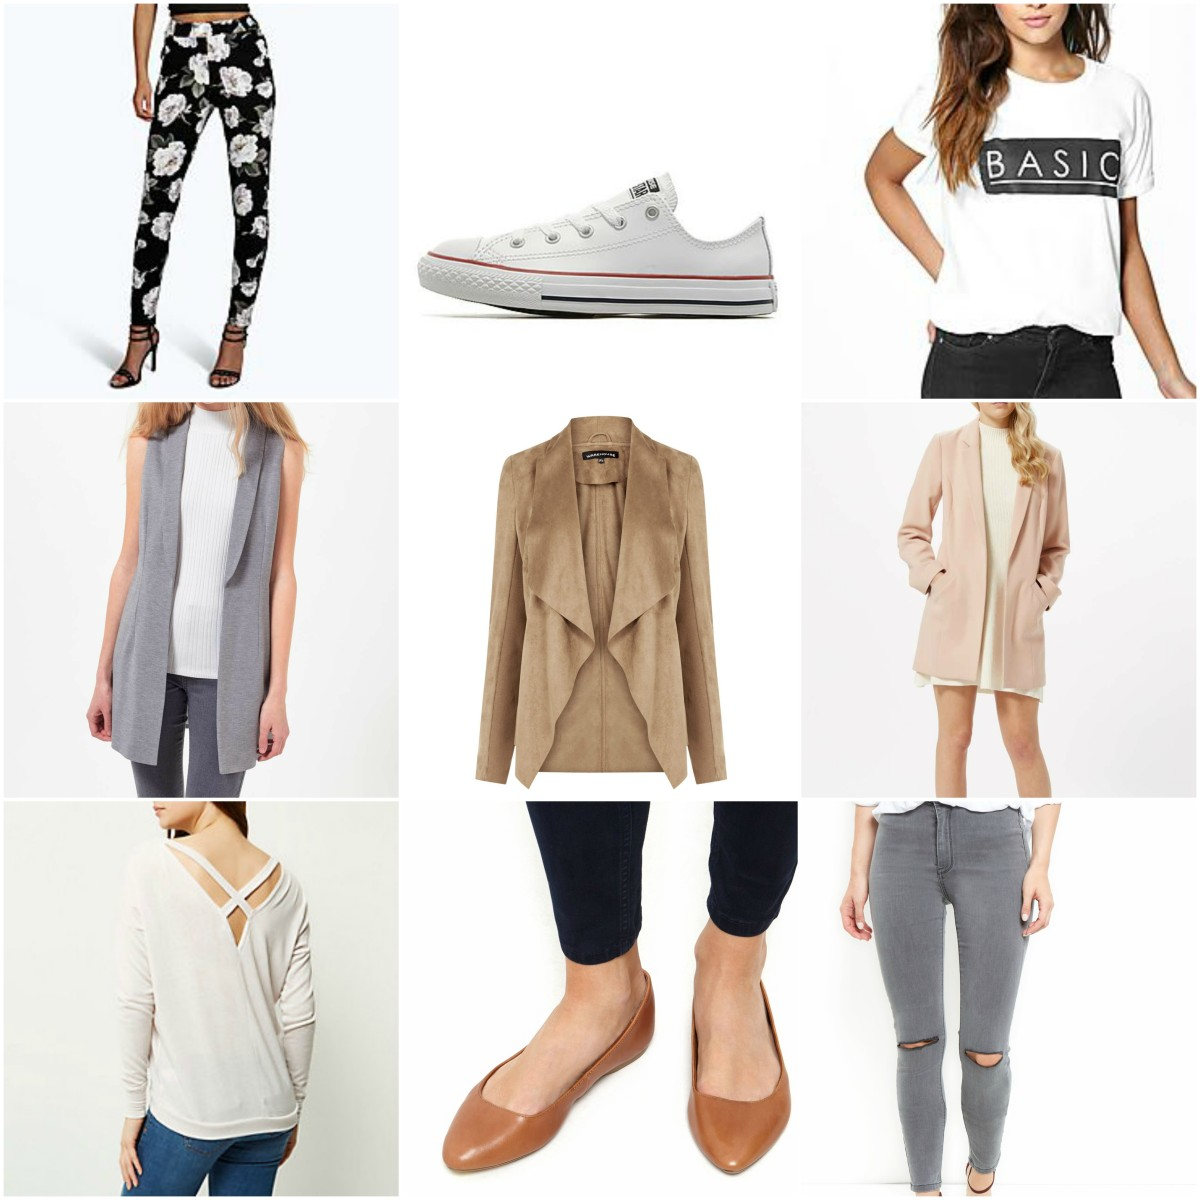 My Capsule Wardrobe: The Winter to Spring transition